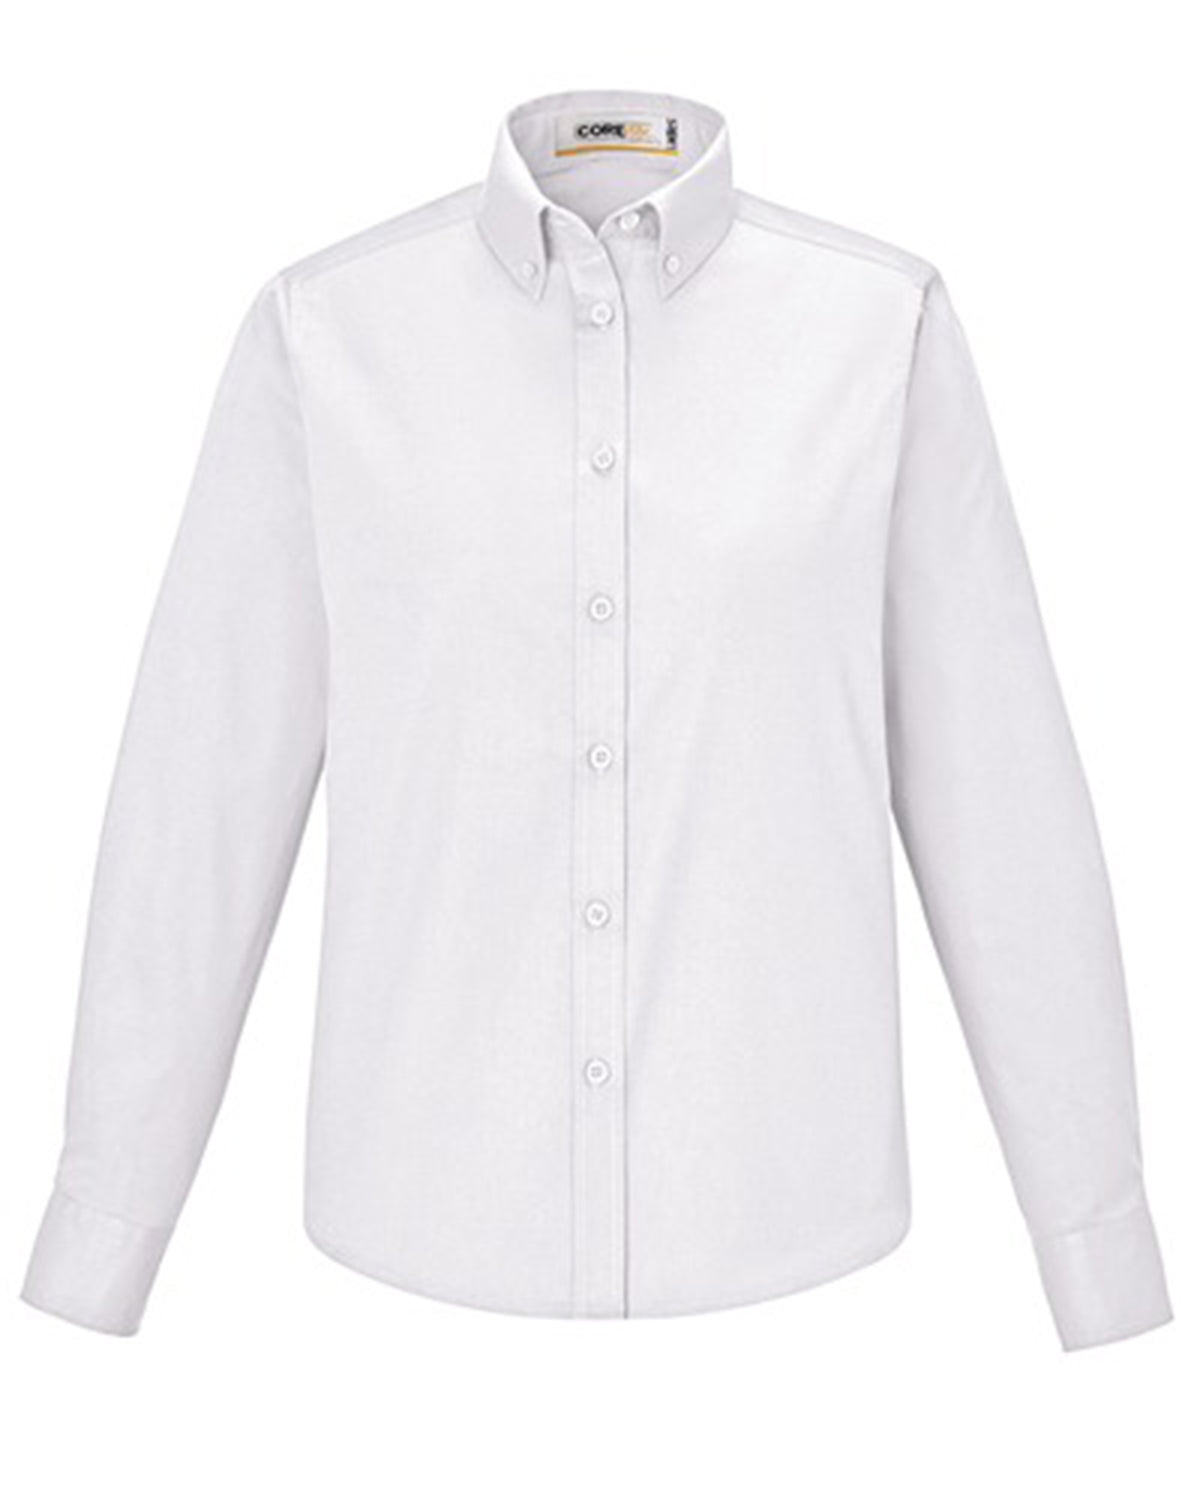 CORE 365 LADIES OPERATE LONG SLEEVE TWILL DRESS SHIRT